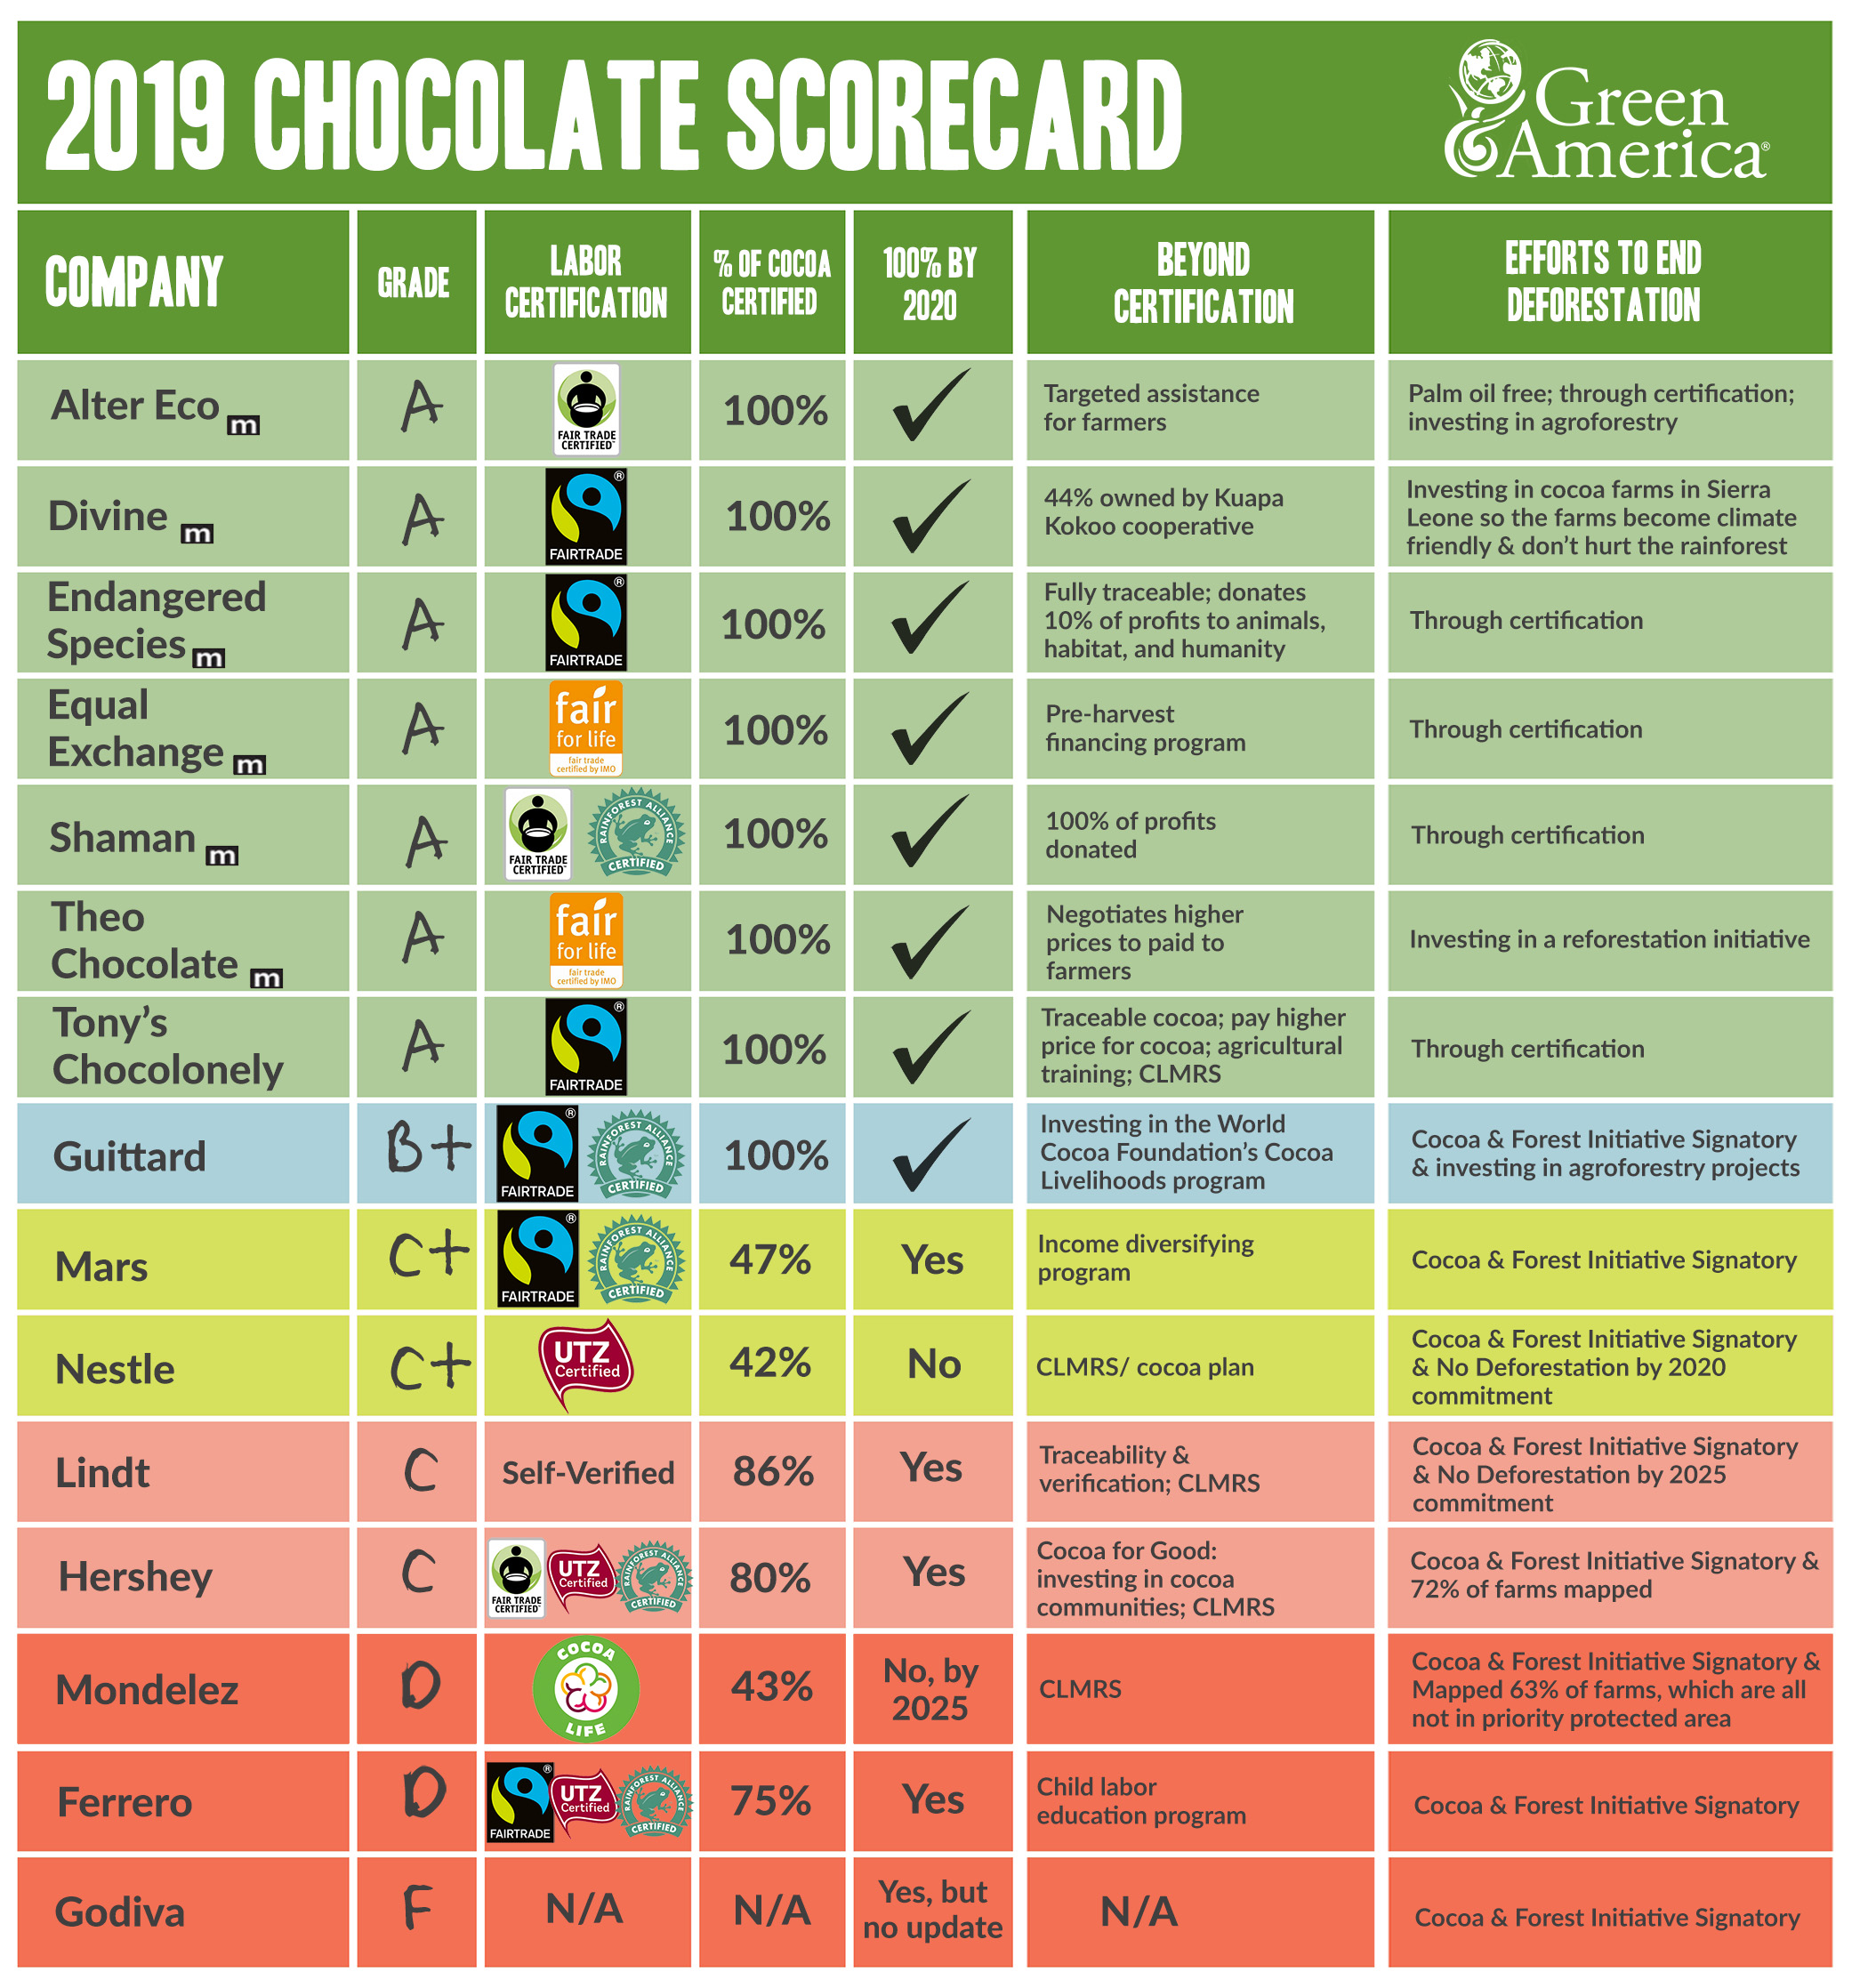 Green America's 2019 Chocolate Scorecard.jpg